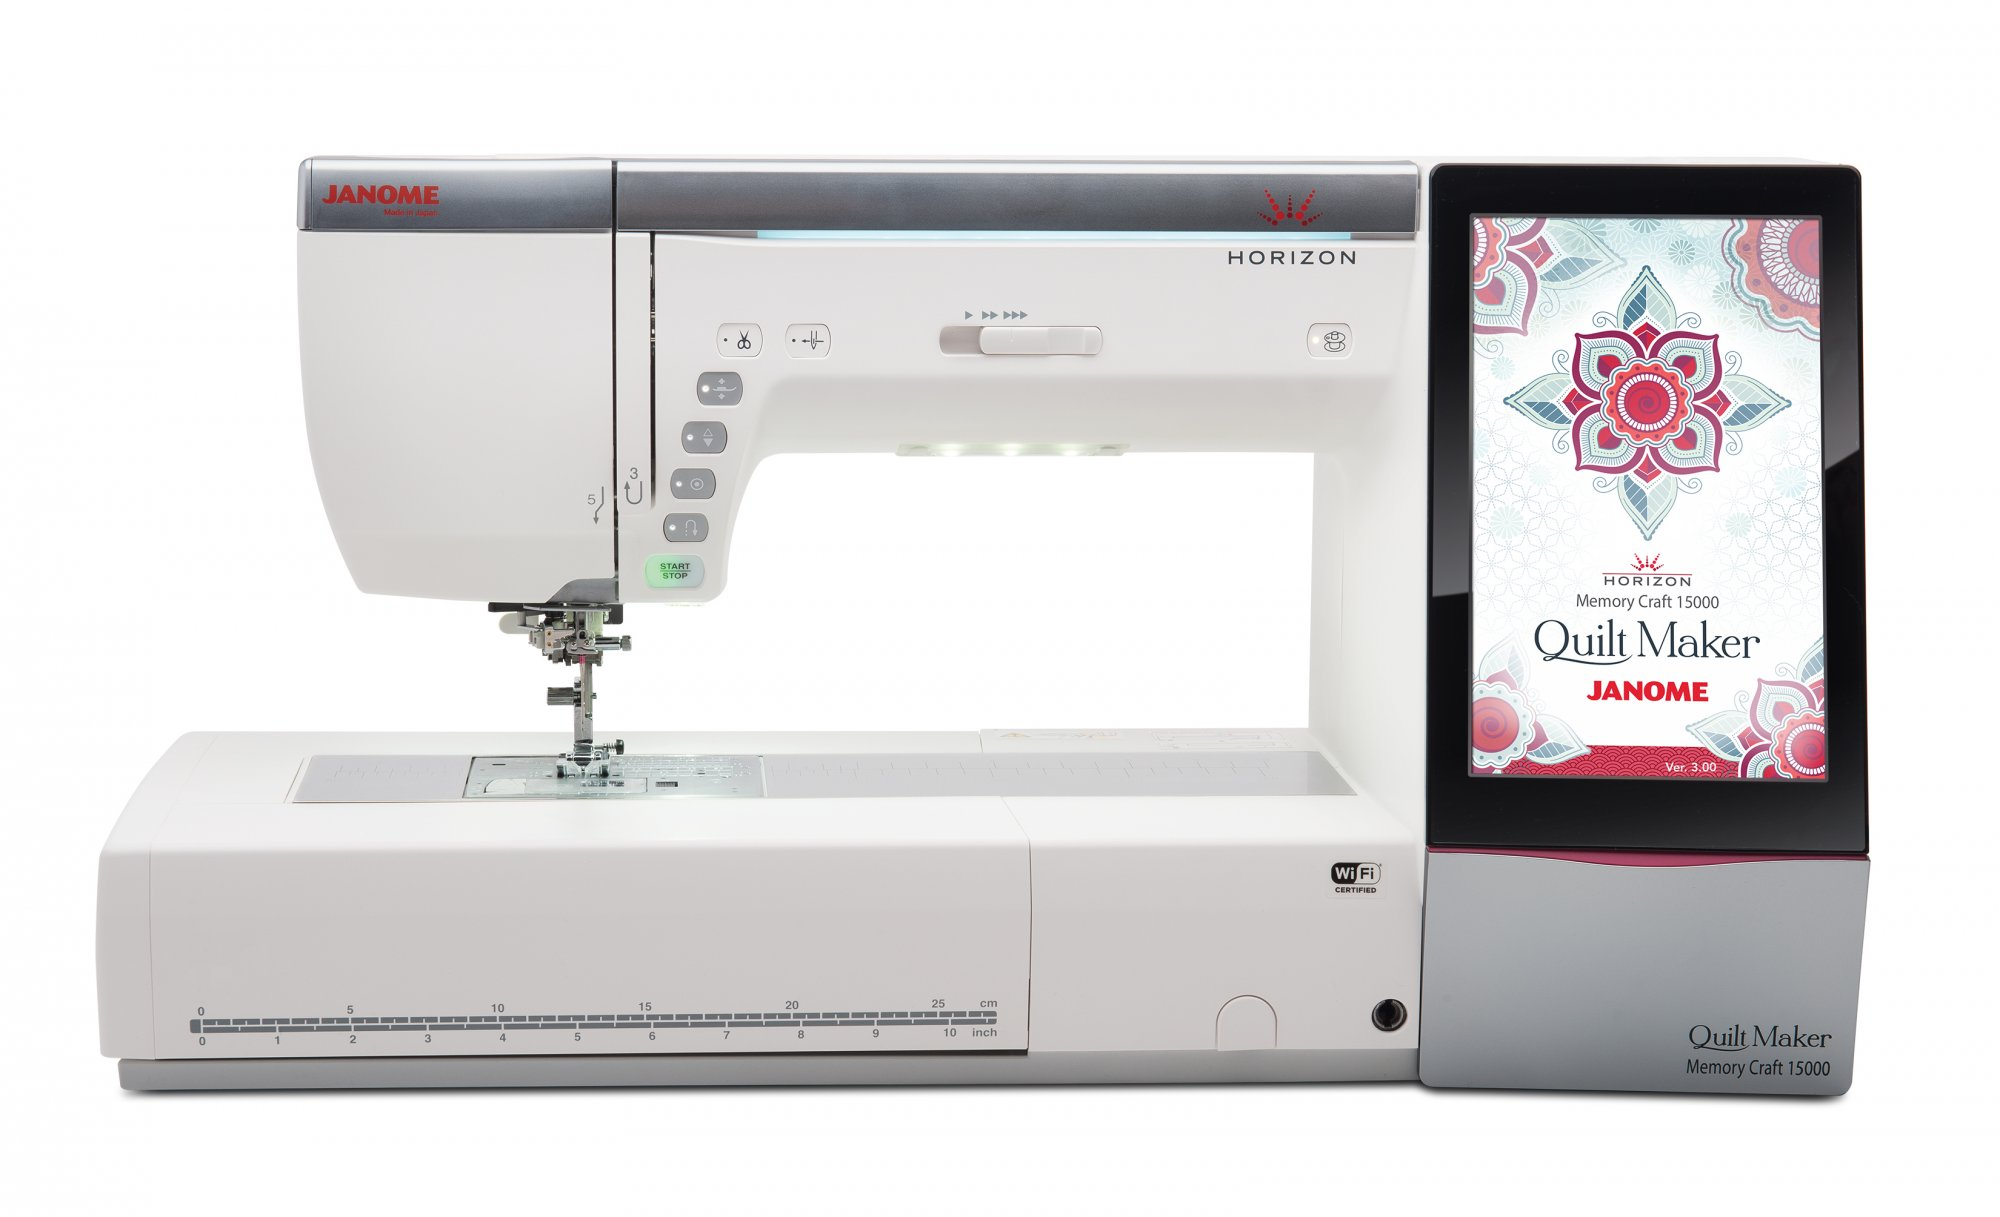 Janome Horizon Quilt Maker Memory Craft 15000 | Quilting-Sewing-Embroidery